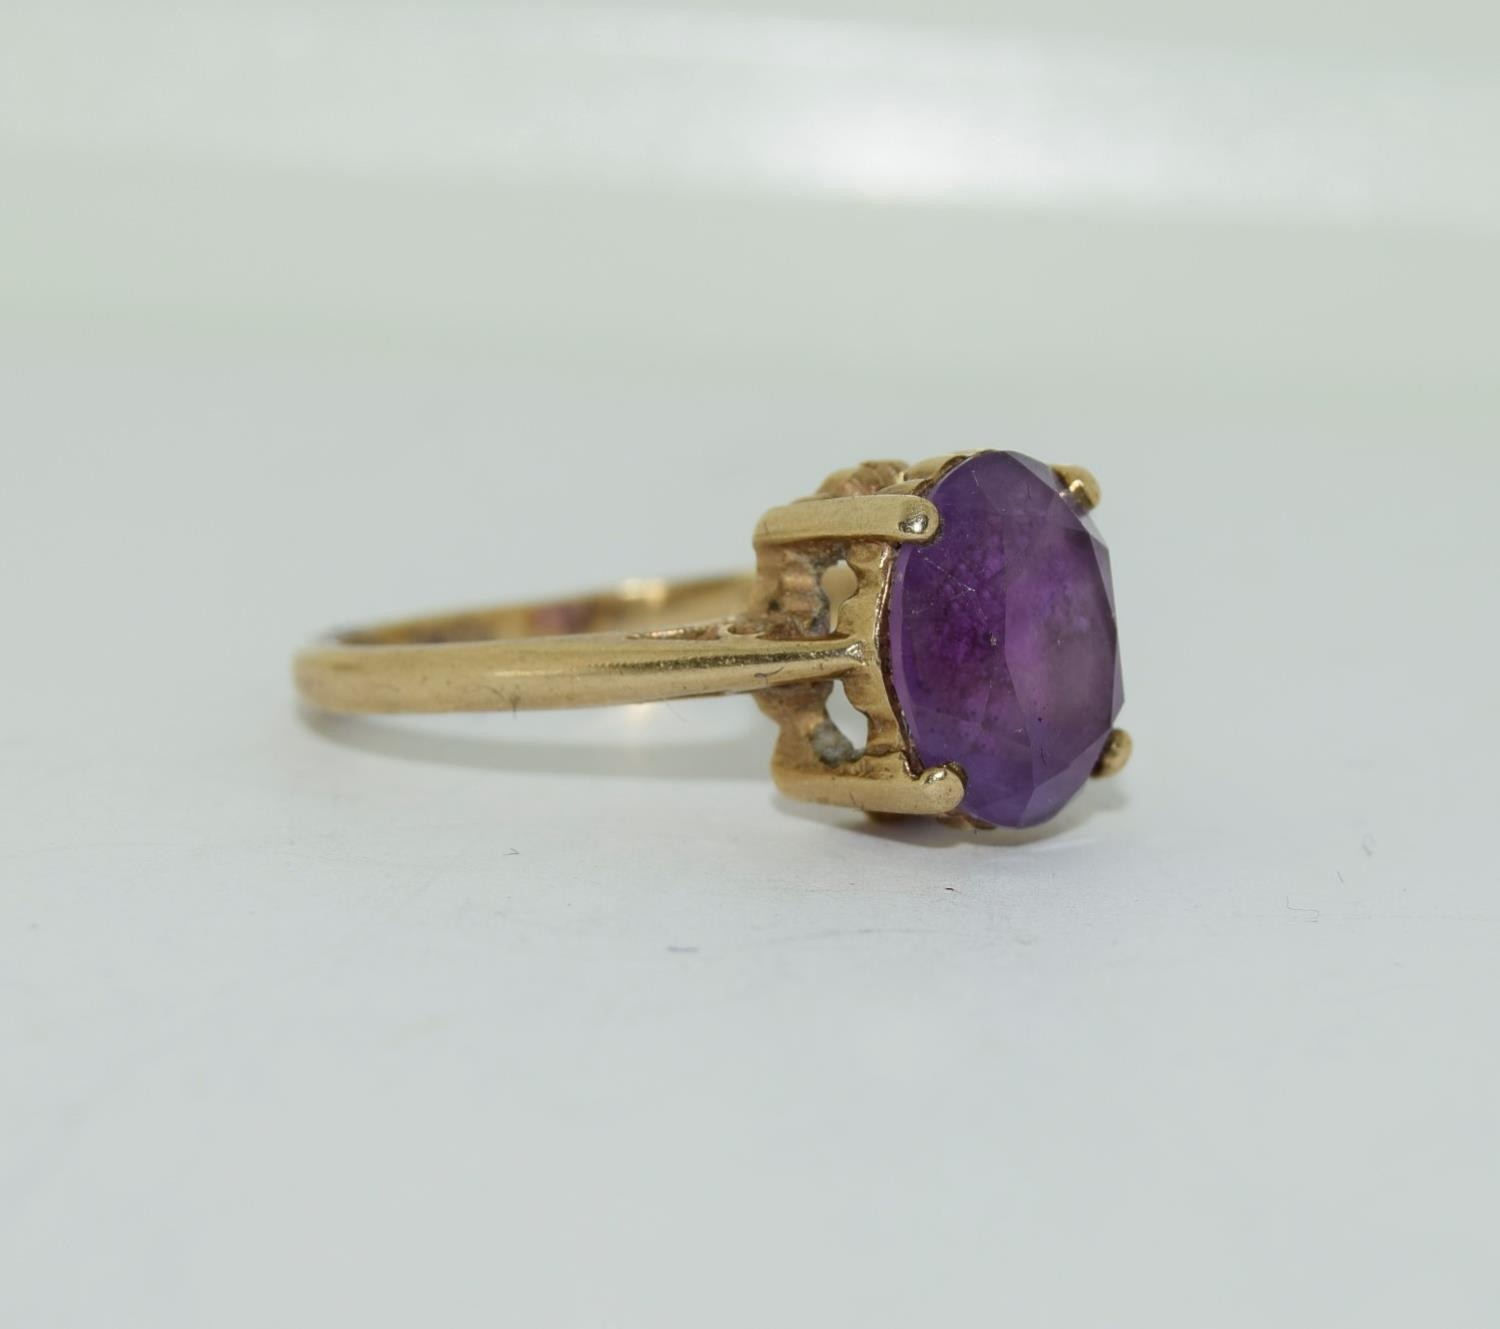 9ct gold ladies Amethyst ring size N - Image 9 of 12